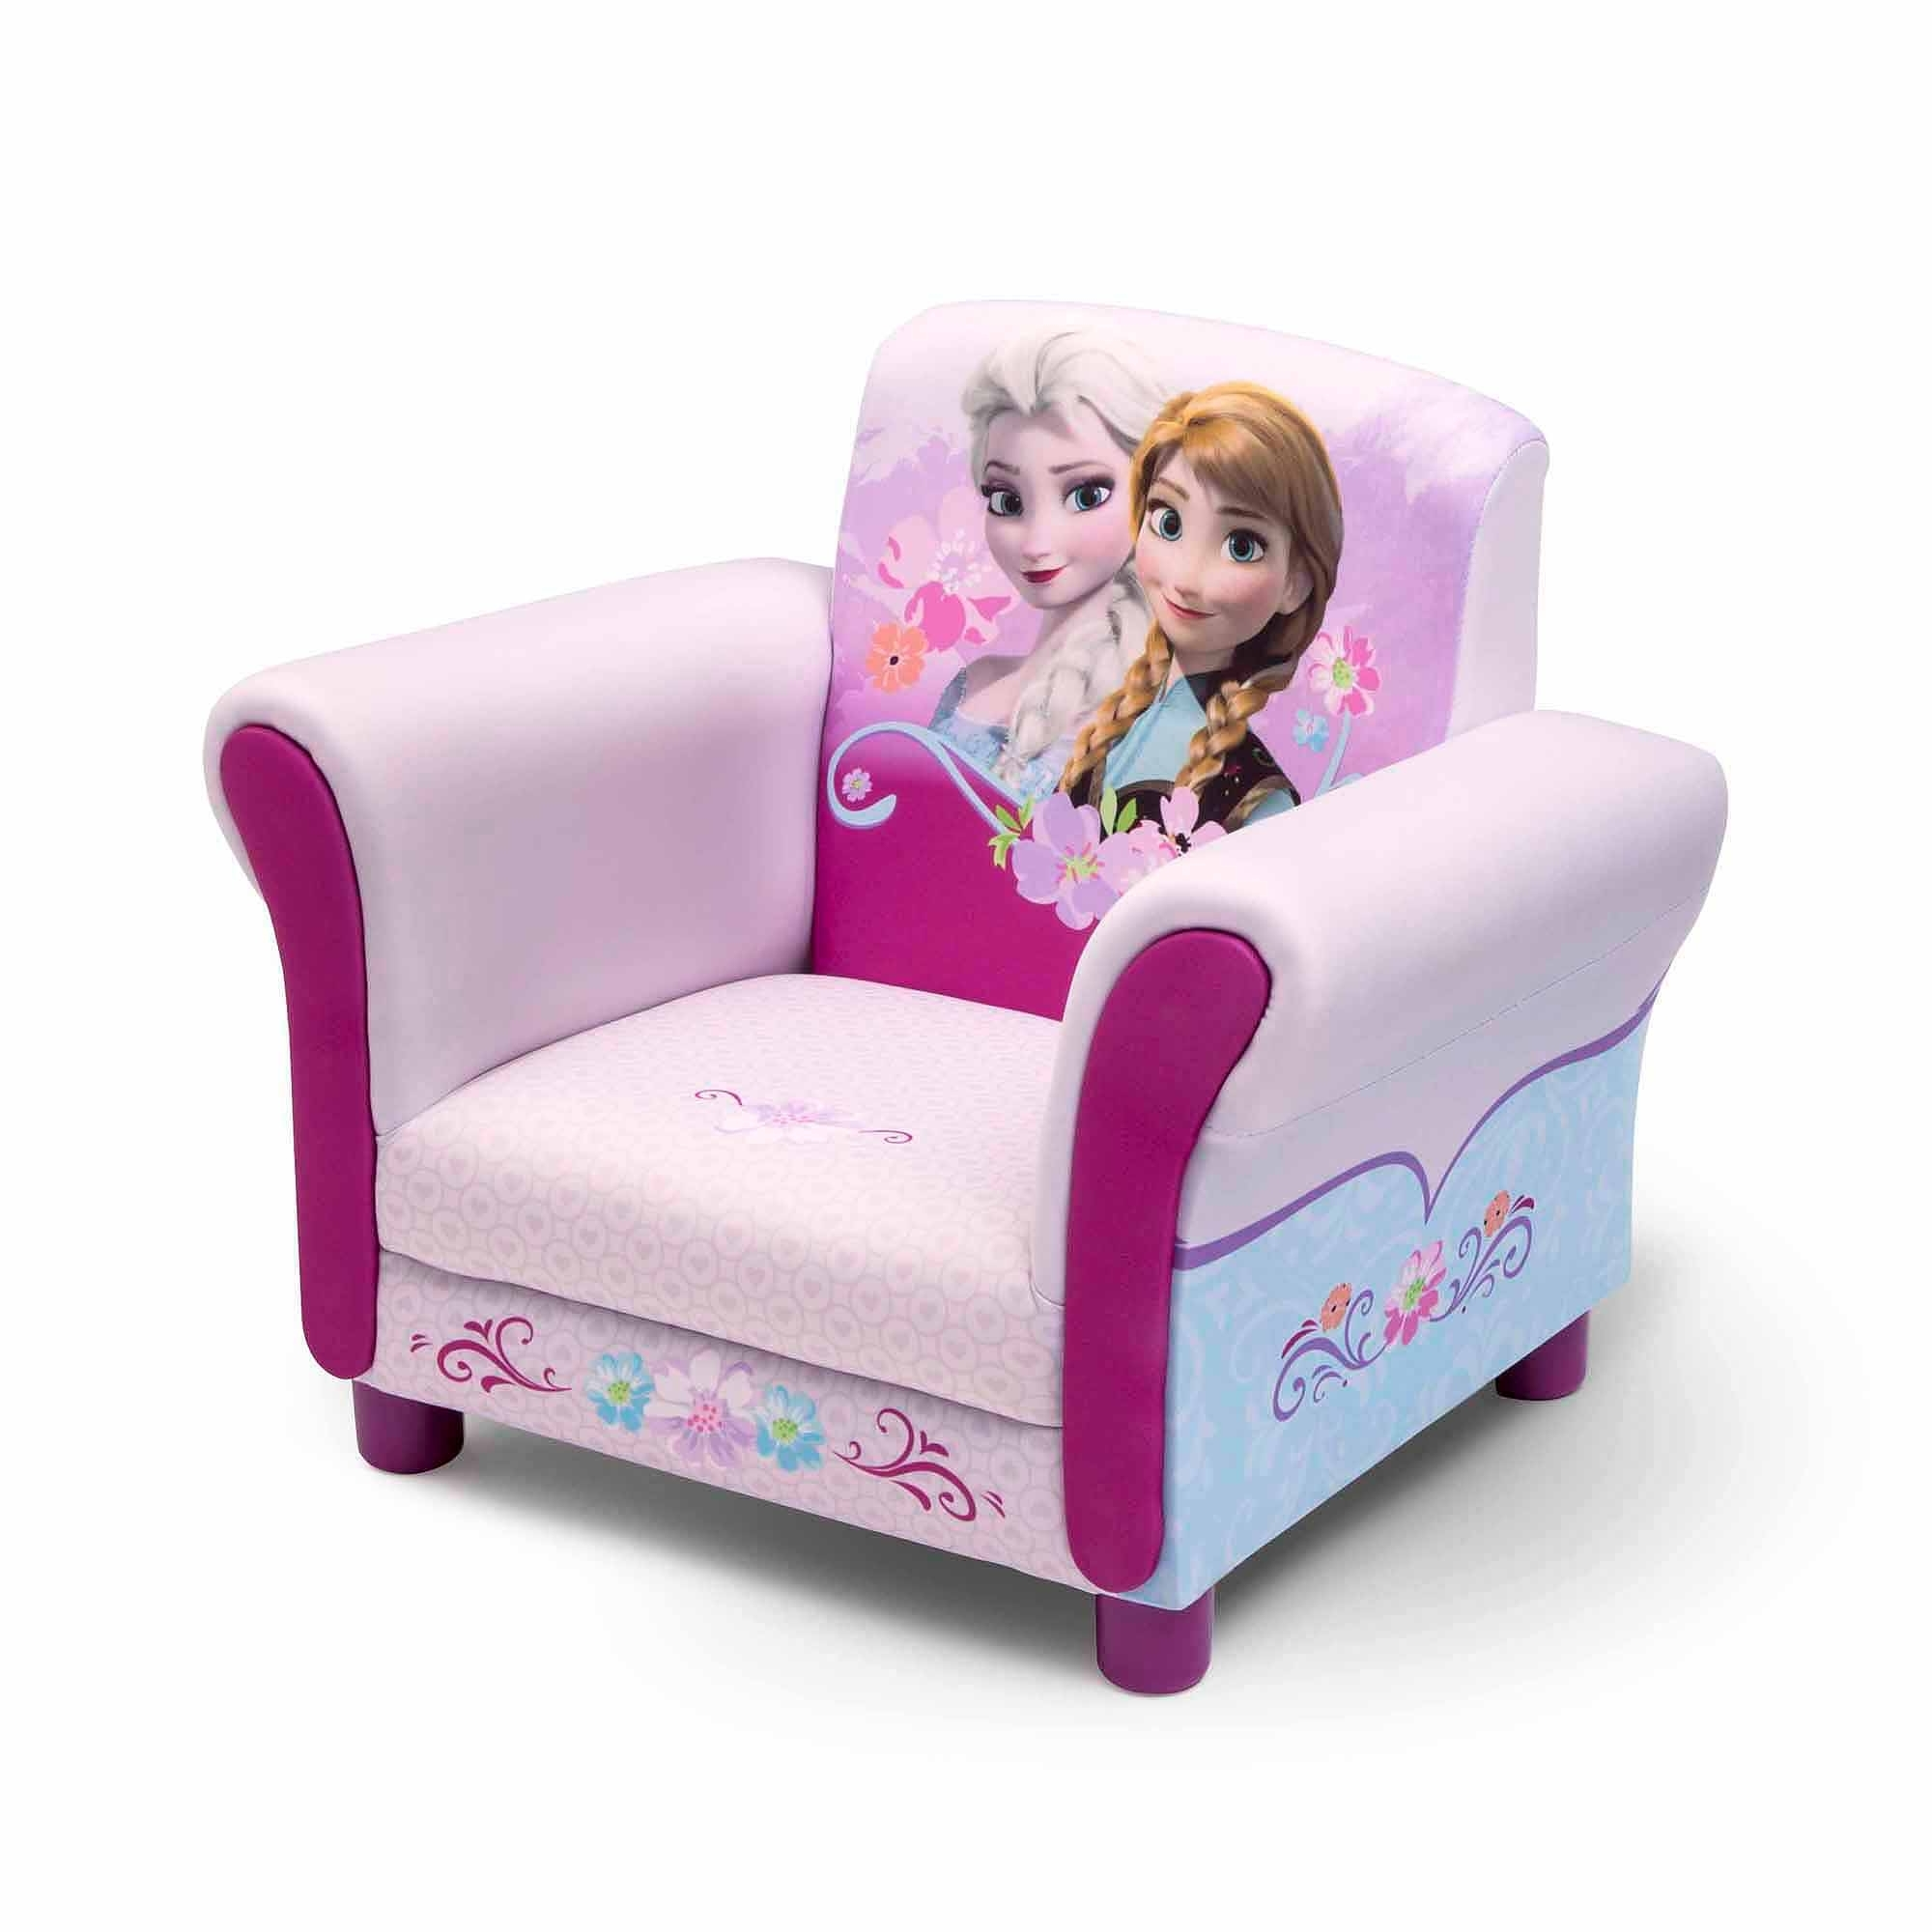 Disney Sofa Chairs Intended For Preferred Disney Frozen Upholstered Chair – Walmart (Gallery 1 of 20)